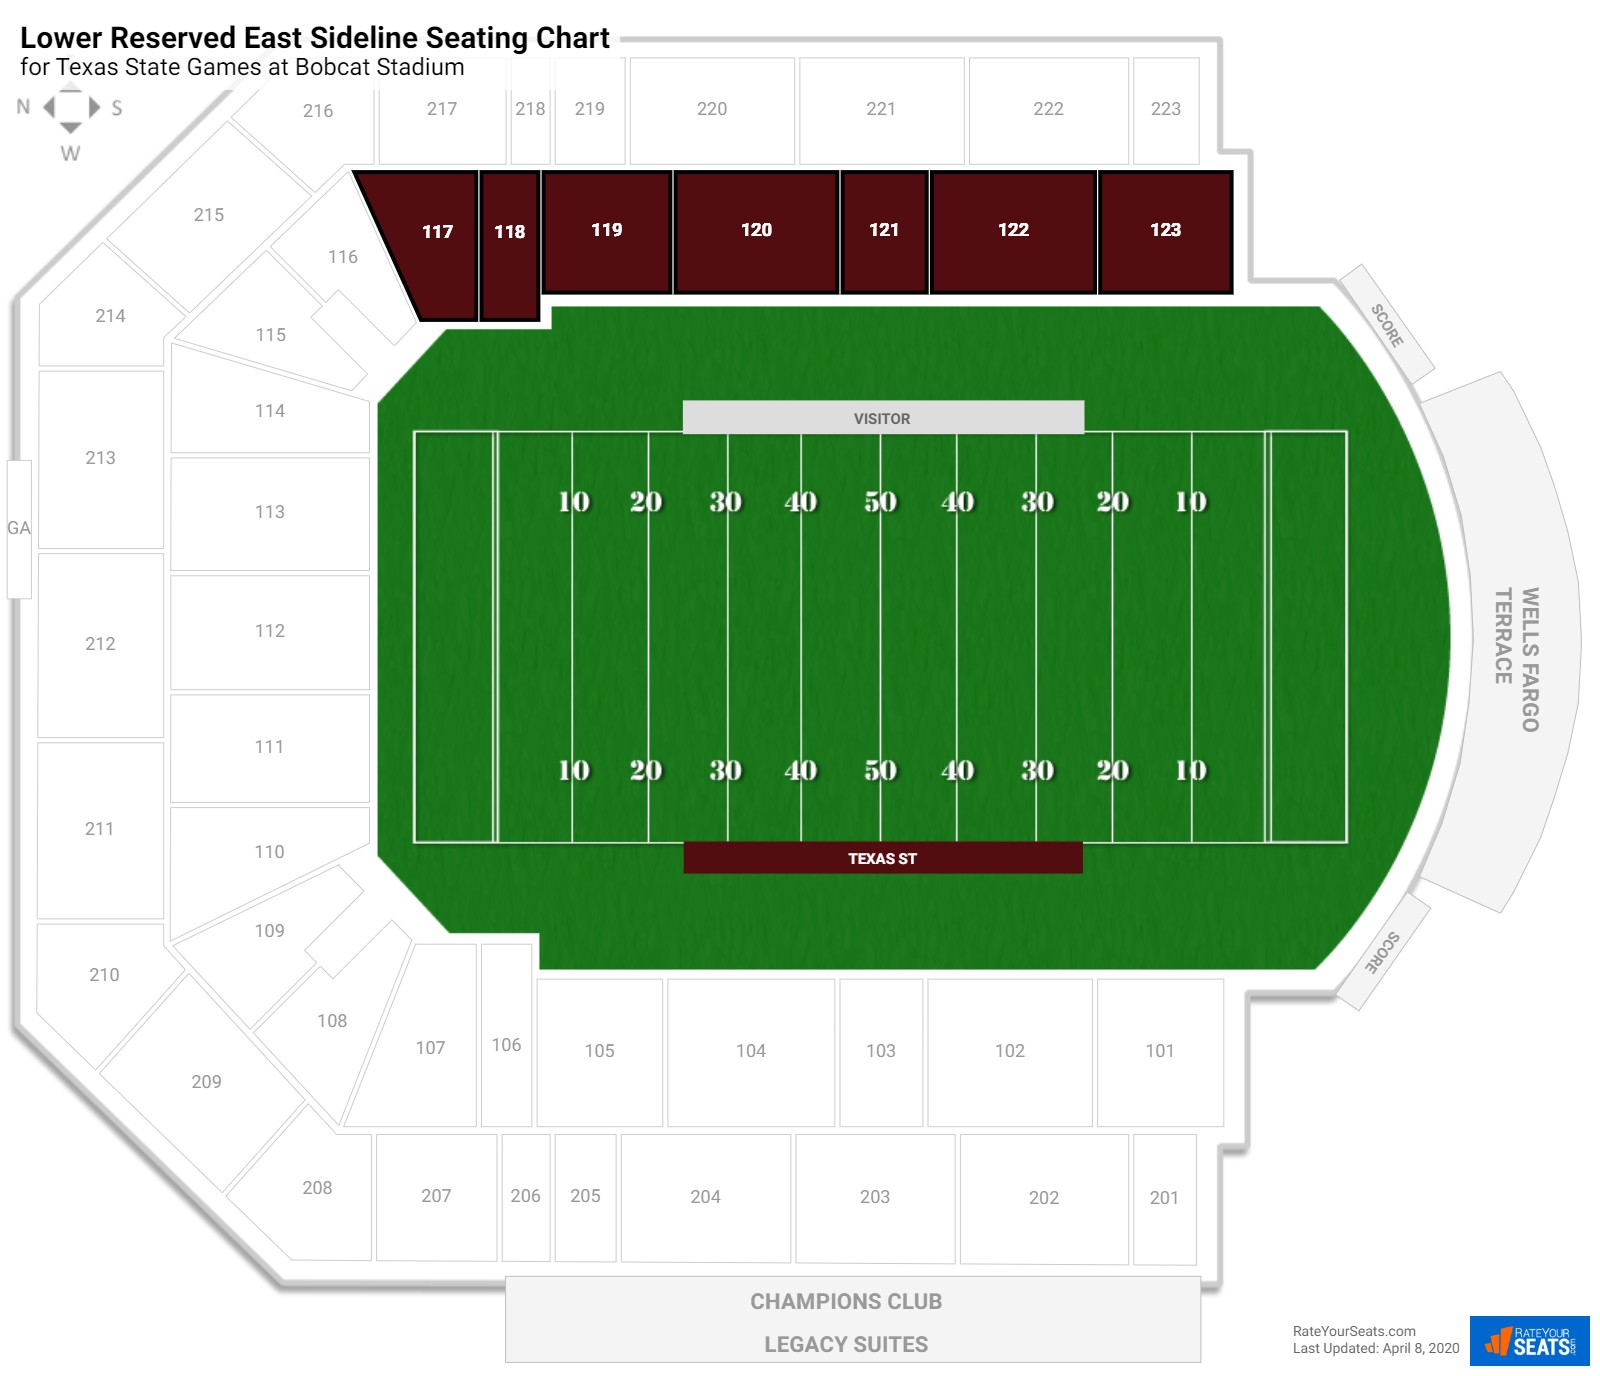 Bobcat Stadium Lower Reserved East Sideline seating chart